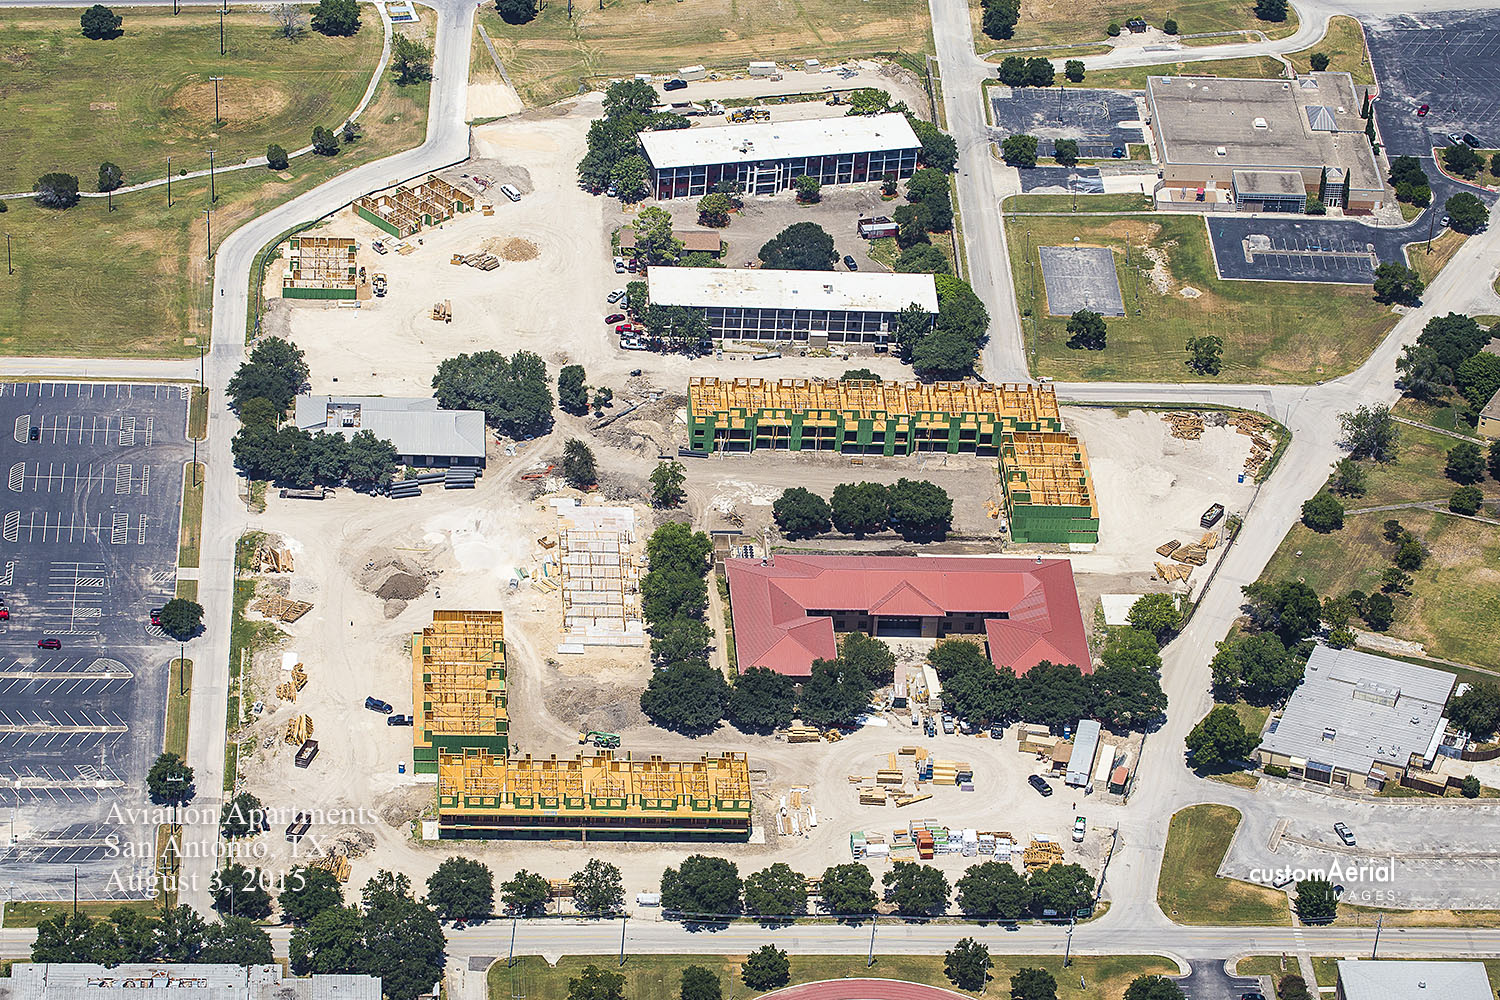 11. Construction Aerial 8-5-2015